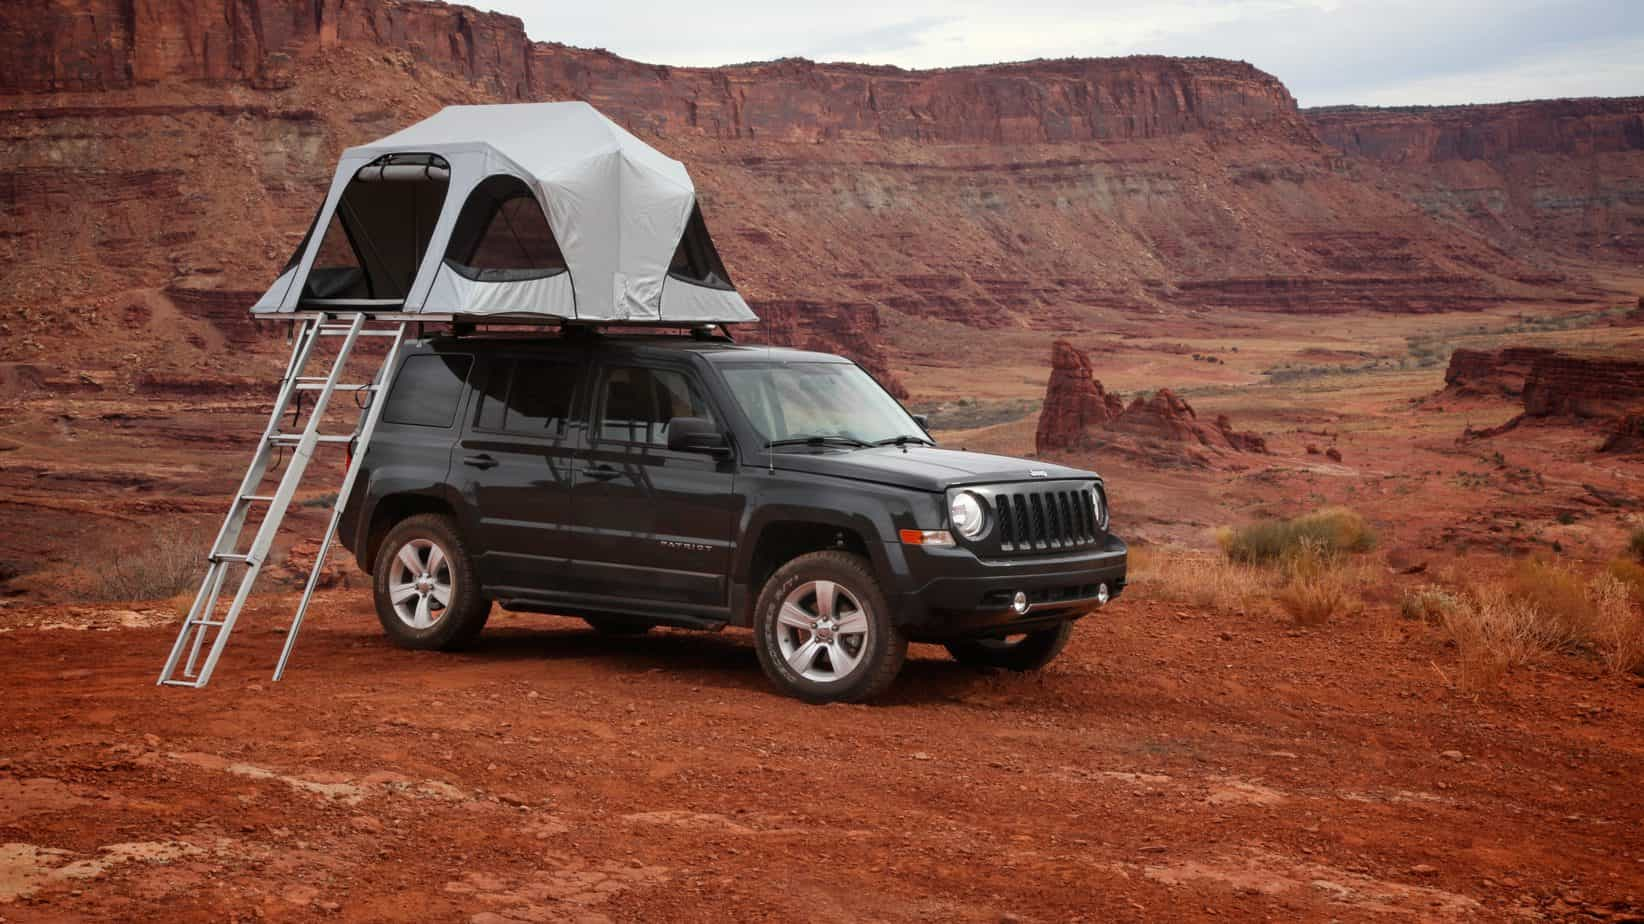 Four Wheel Drive Gear Uncategorized & First Impressions: James Baroud Horizon Vision Roof Top Tent ...